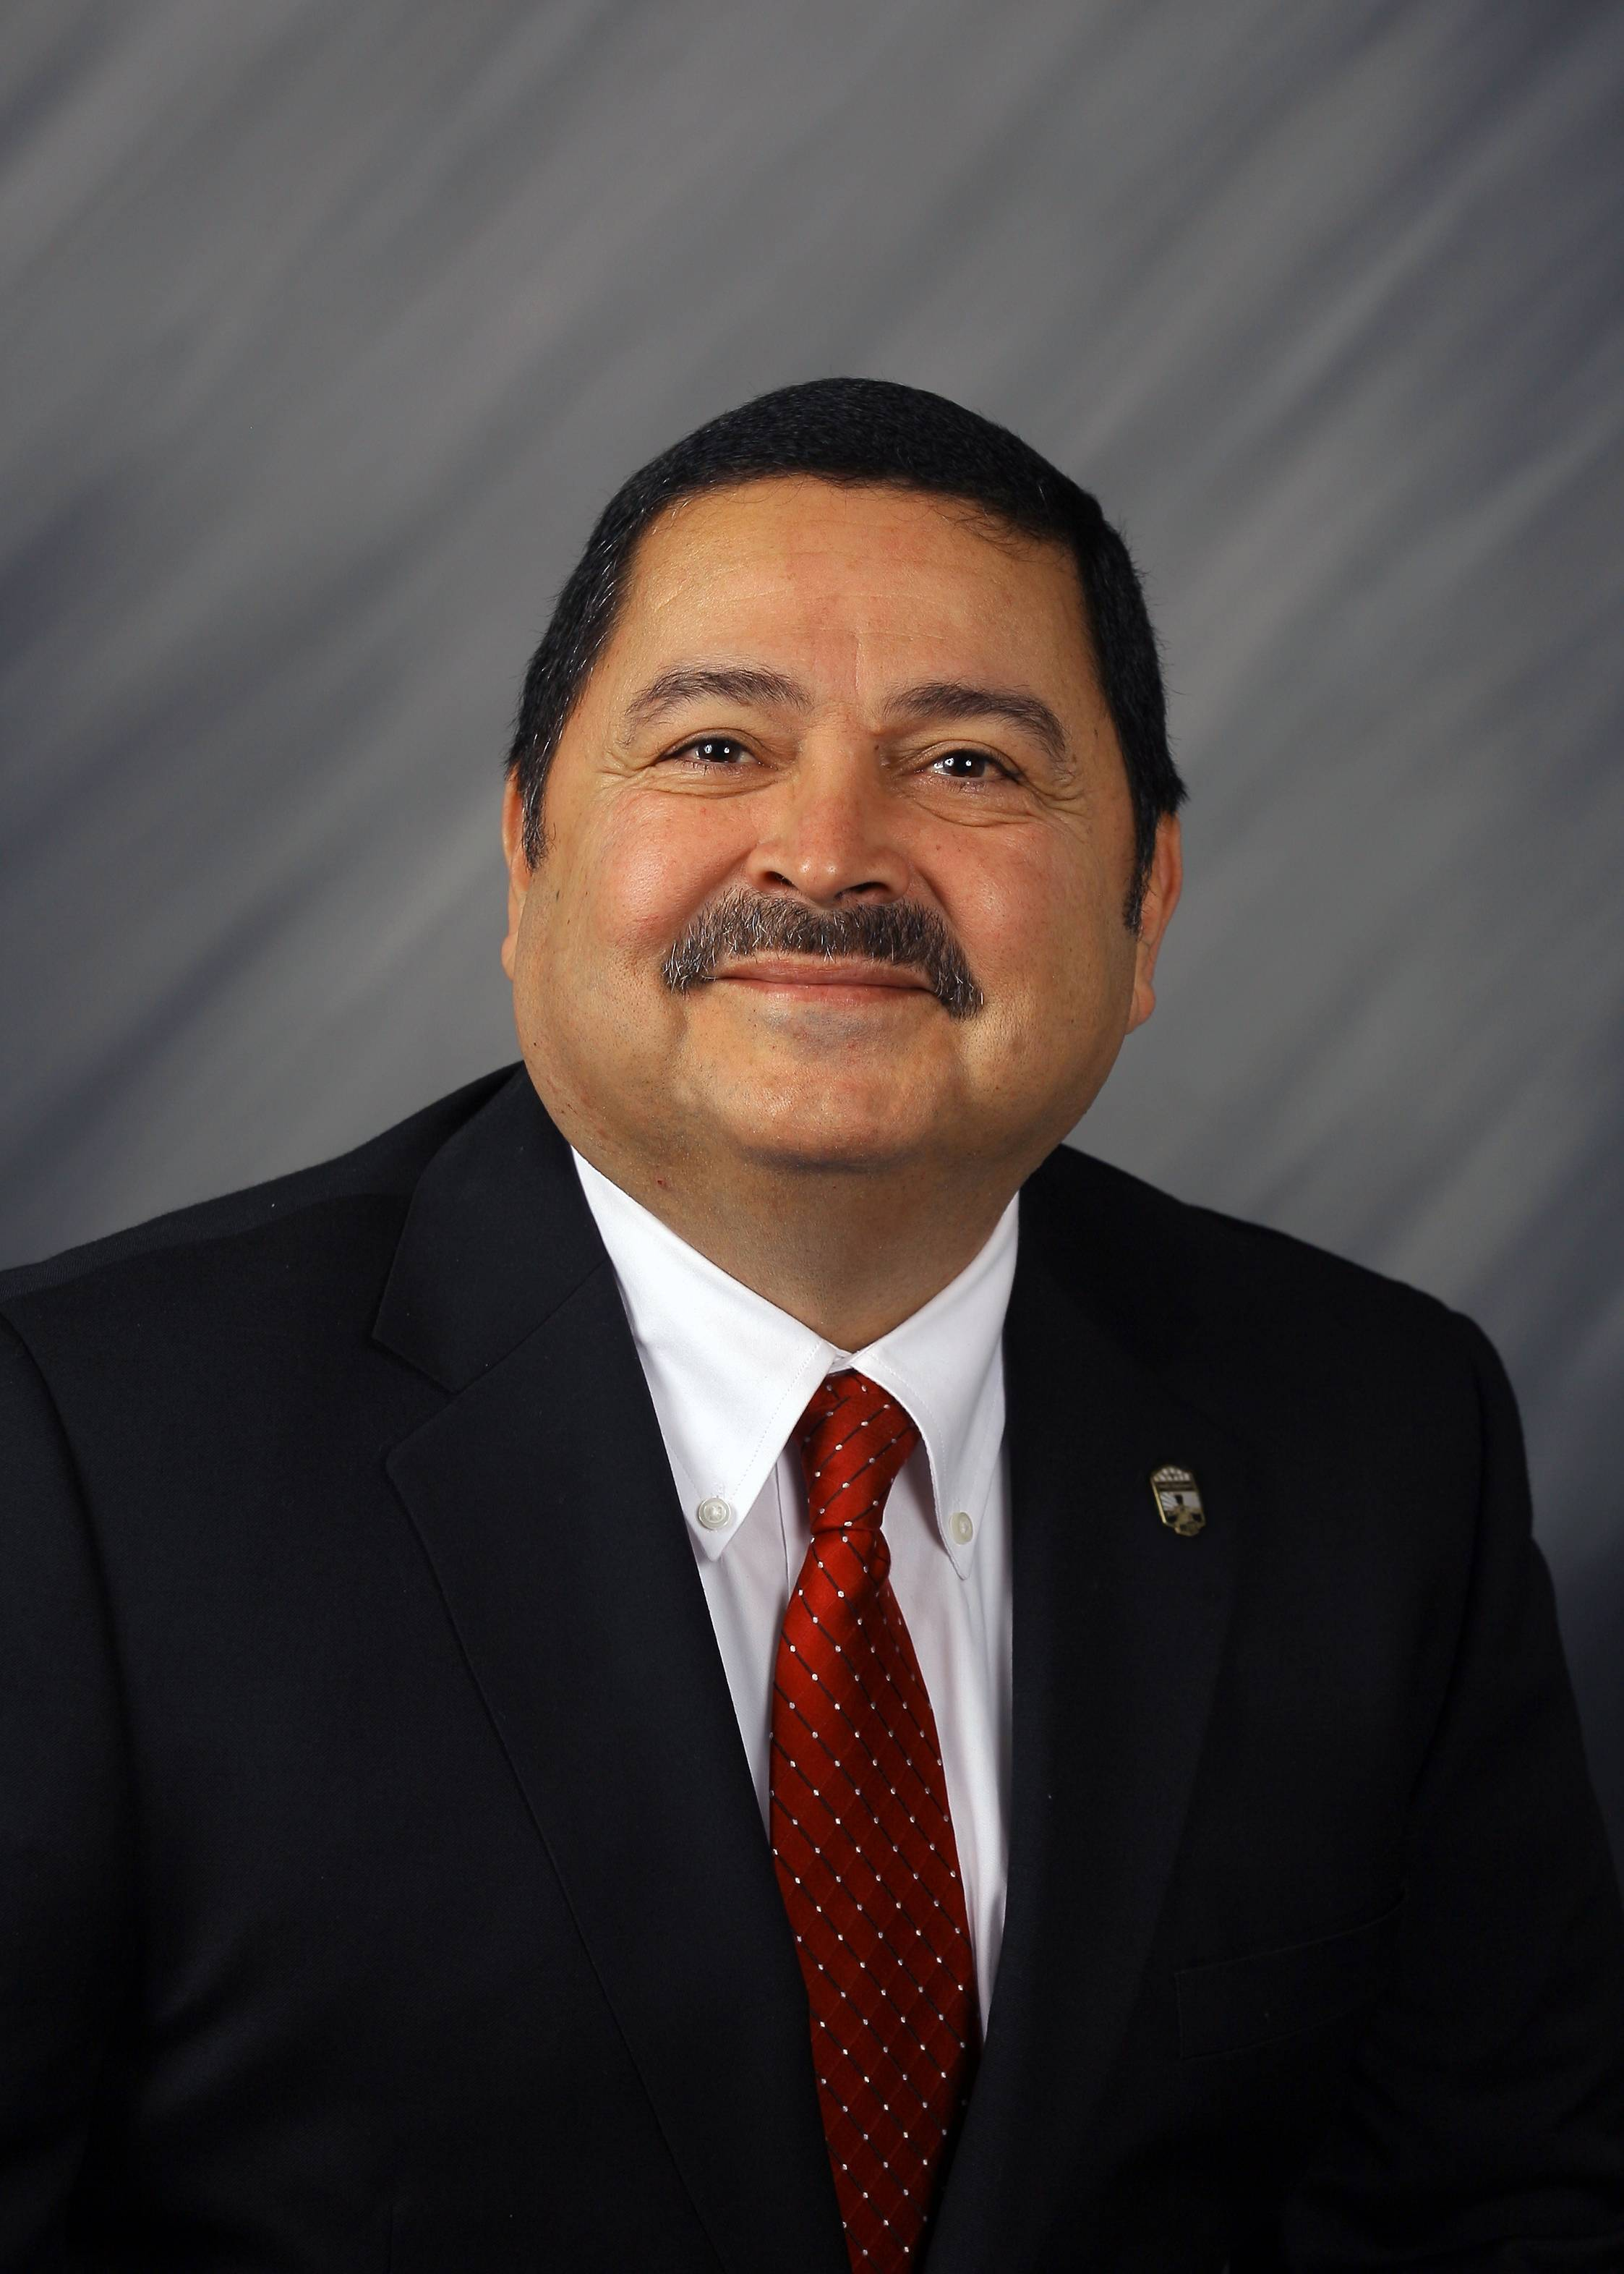 Ruben Pineda, running for West Chicago Mayor (4-year Term)